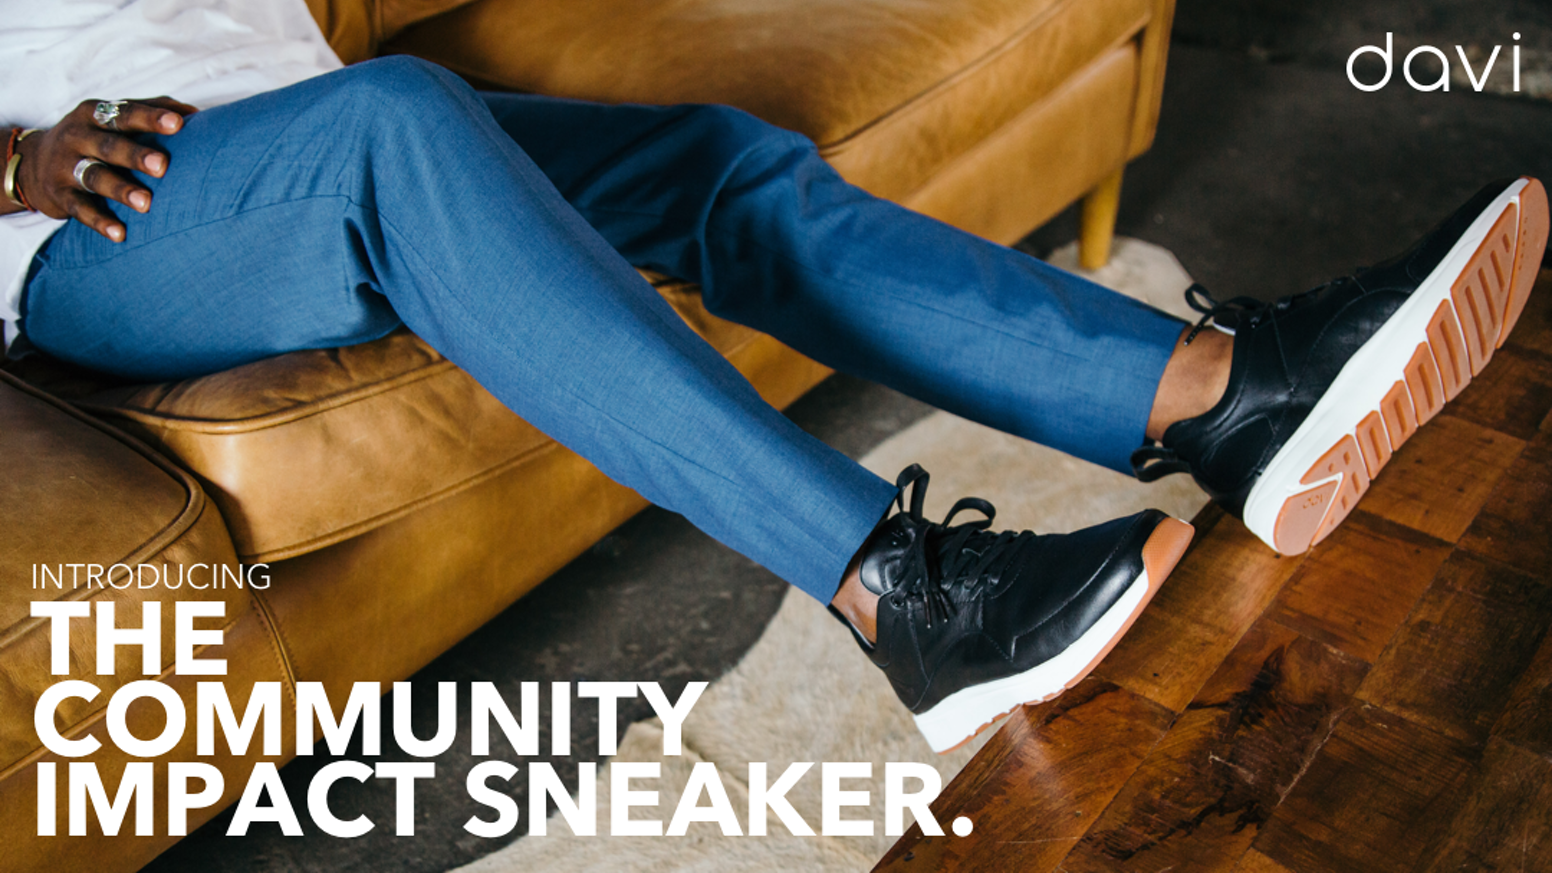 Davi is a transparent, socially responsible sneaker company that supports community art and athletics programs in need.